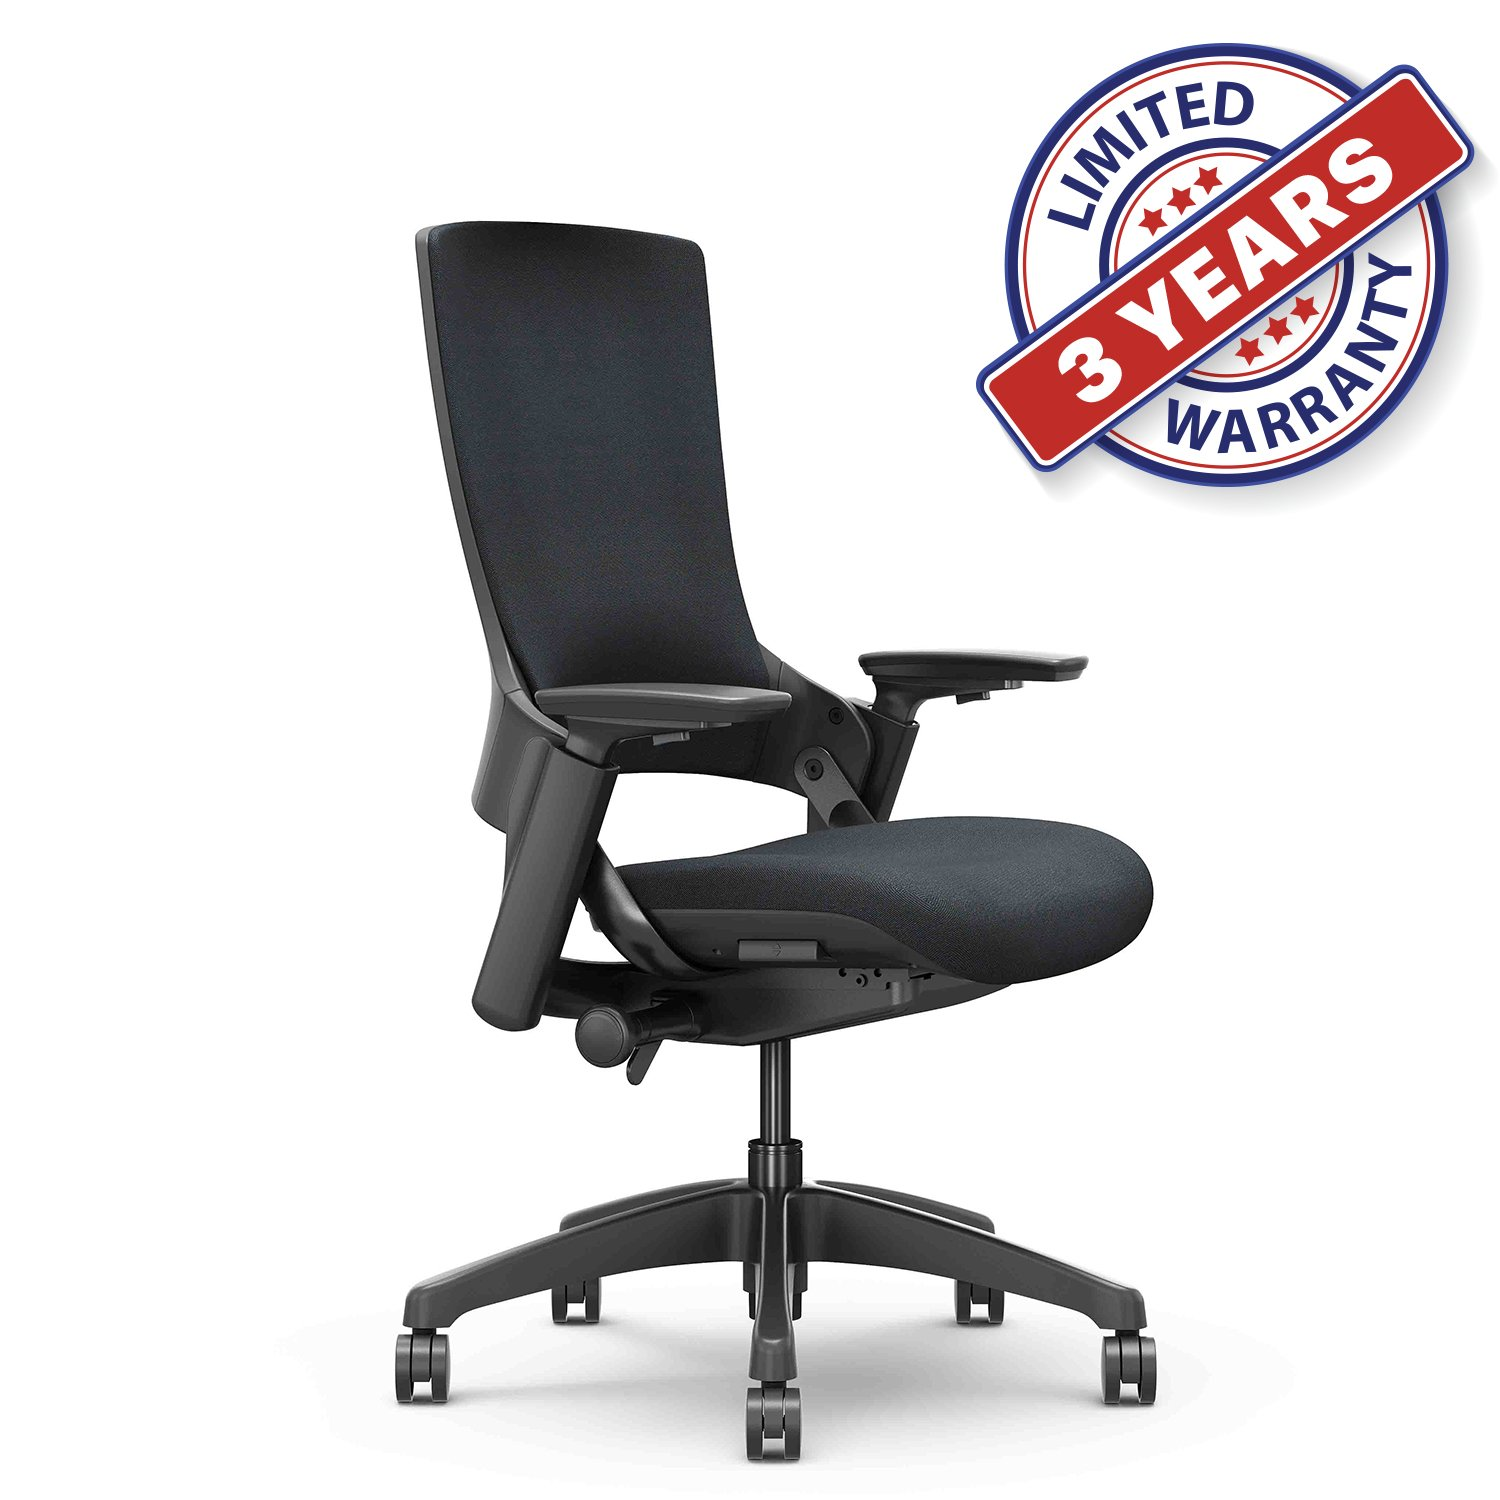 CLATINA Ergonomic High Swivel Executive Chair with Adjustable Height 3D Arm Rest Lumbar Support and Upholstered Back for Home Office (Black) New Version